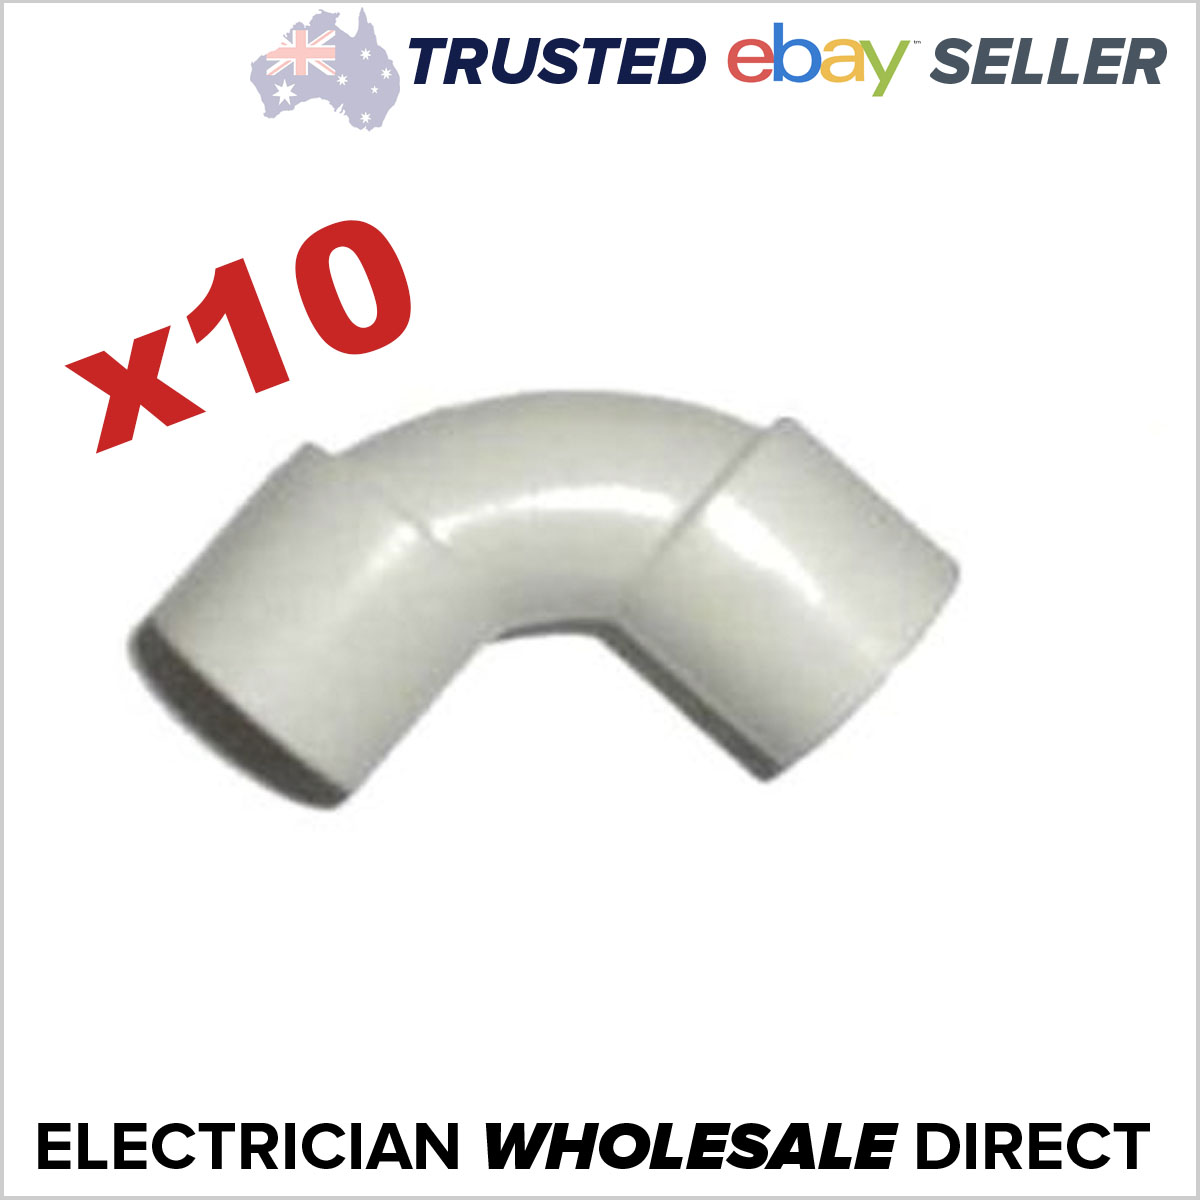 Bulk 10 X 25mm 90 Degree Elbow Bend Electrical Conduit Eda Online Electricwireconduitjpg Fully Tested To Australian